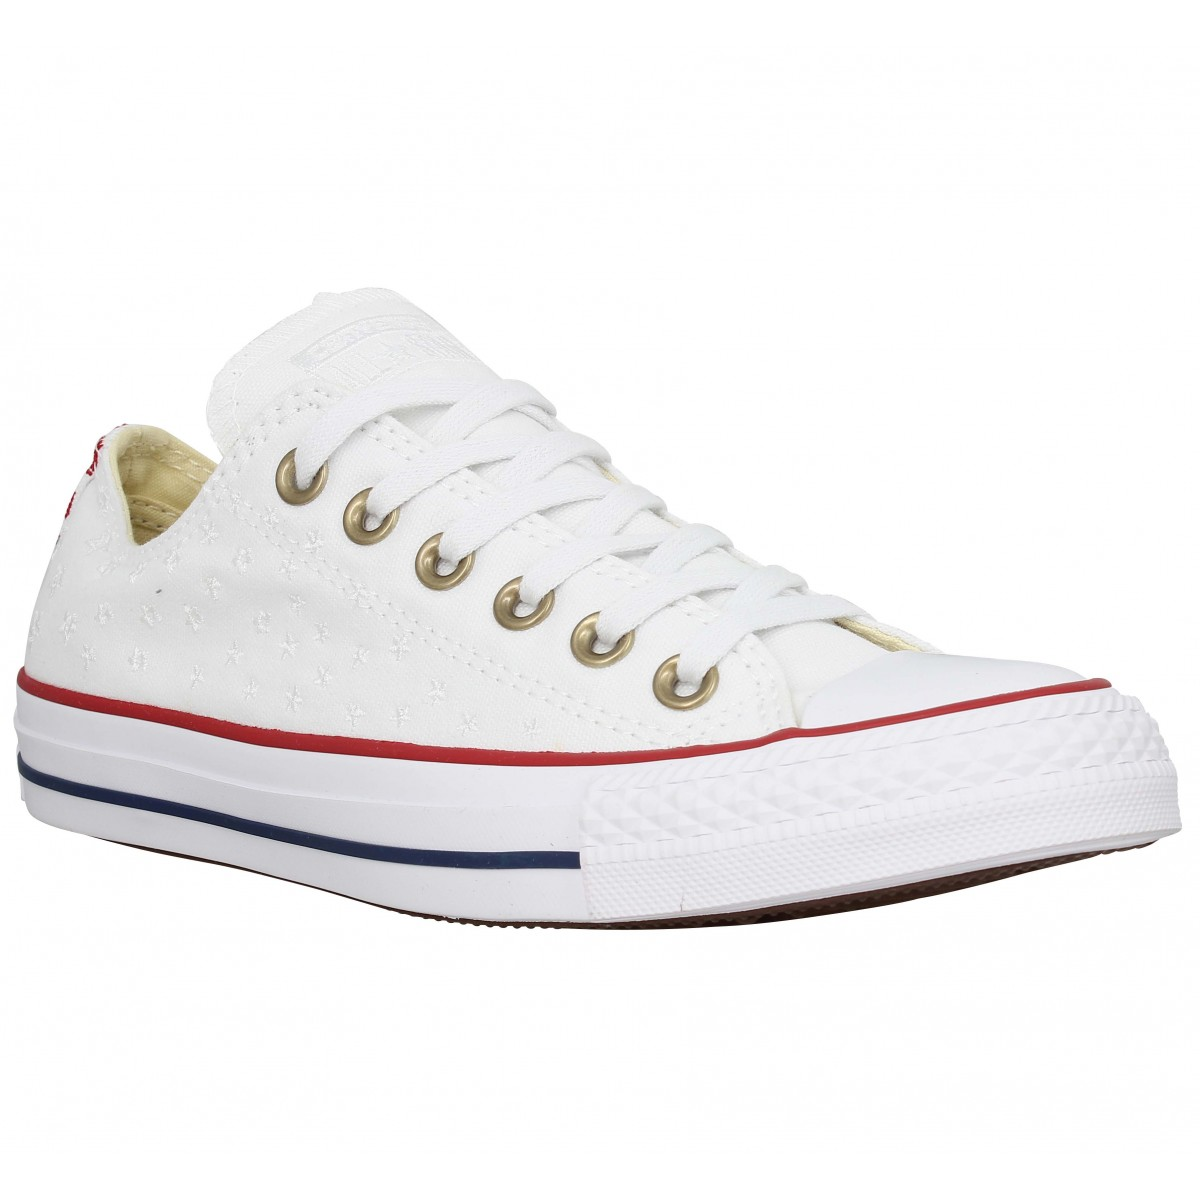 converse chuck taylor all star toile brodee femme blanc femme fanny chaussures. Black Bedroom Furniture Sets. Home Design Ideas